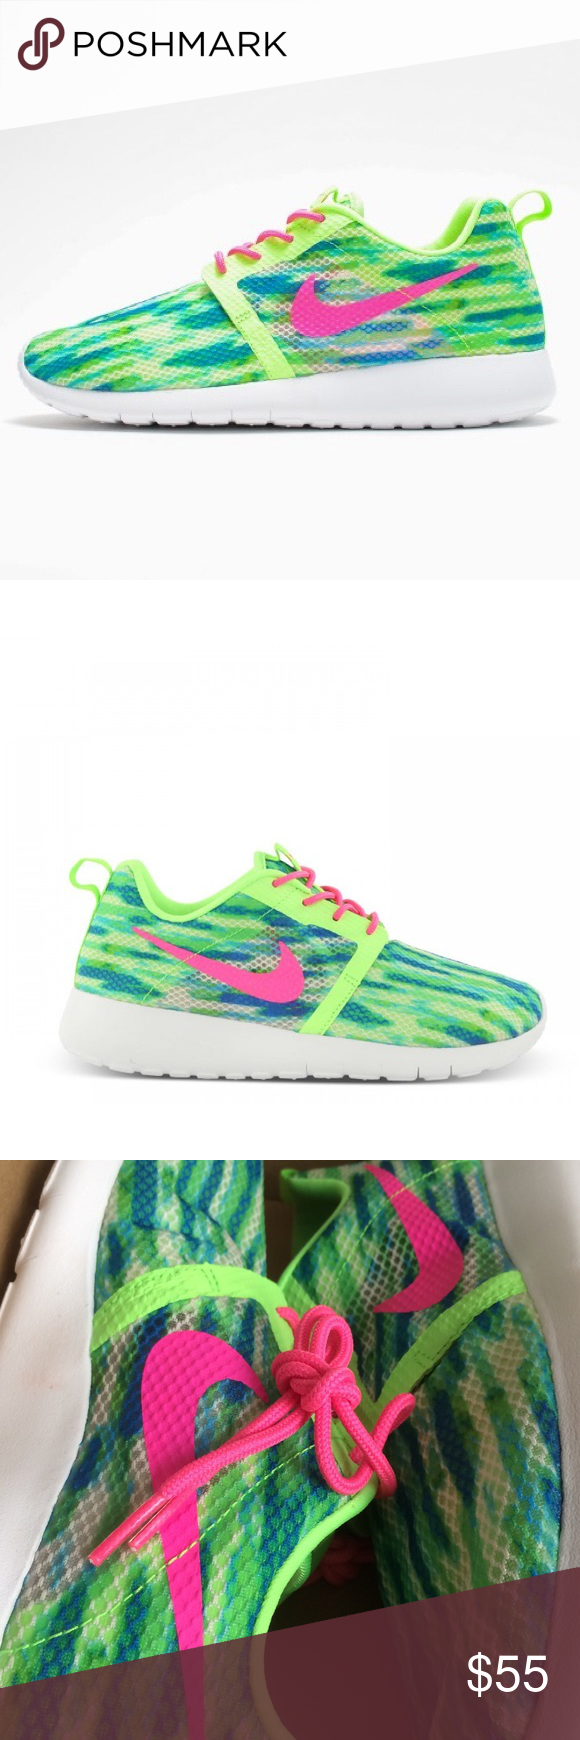 Nike Roshe Run Flight Weight Women S Shoes New Brand New Without Box Size 7 Youth Which Is A Women S Size 8 5 I Have Added A Sizing C Nike Roshe Run Nike Shoe Brands